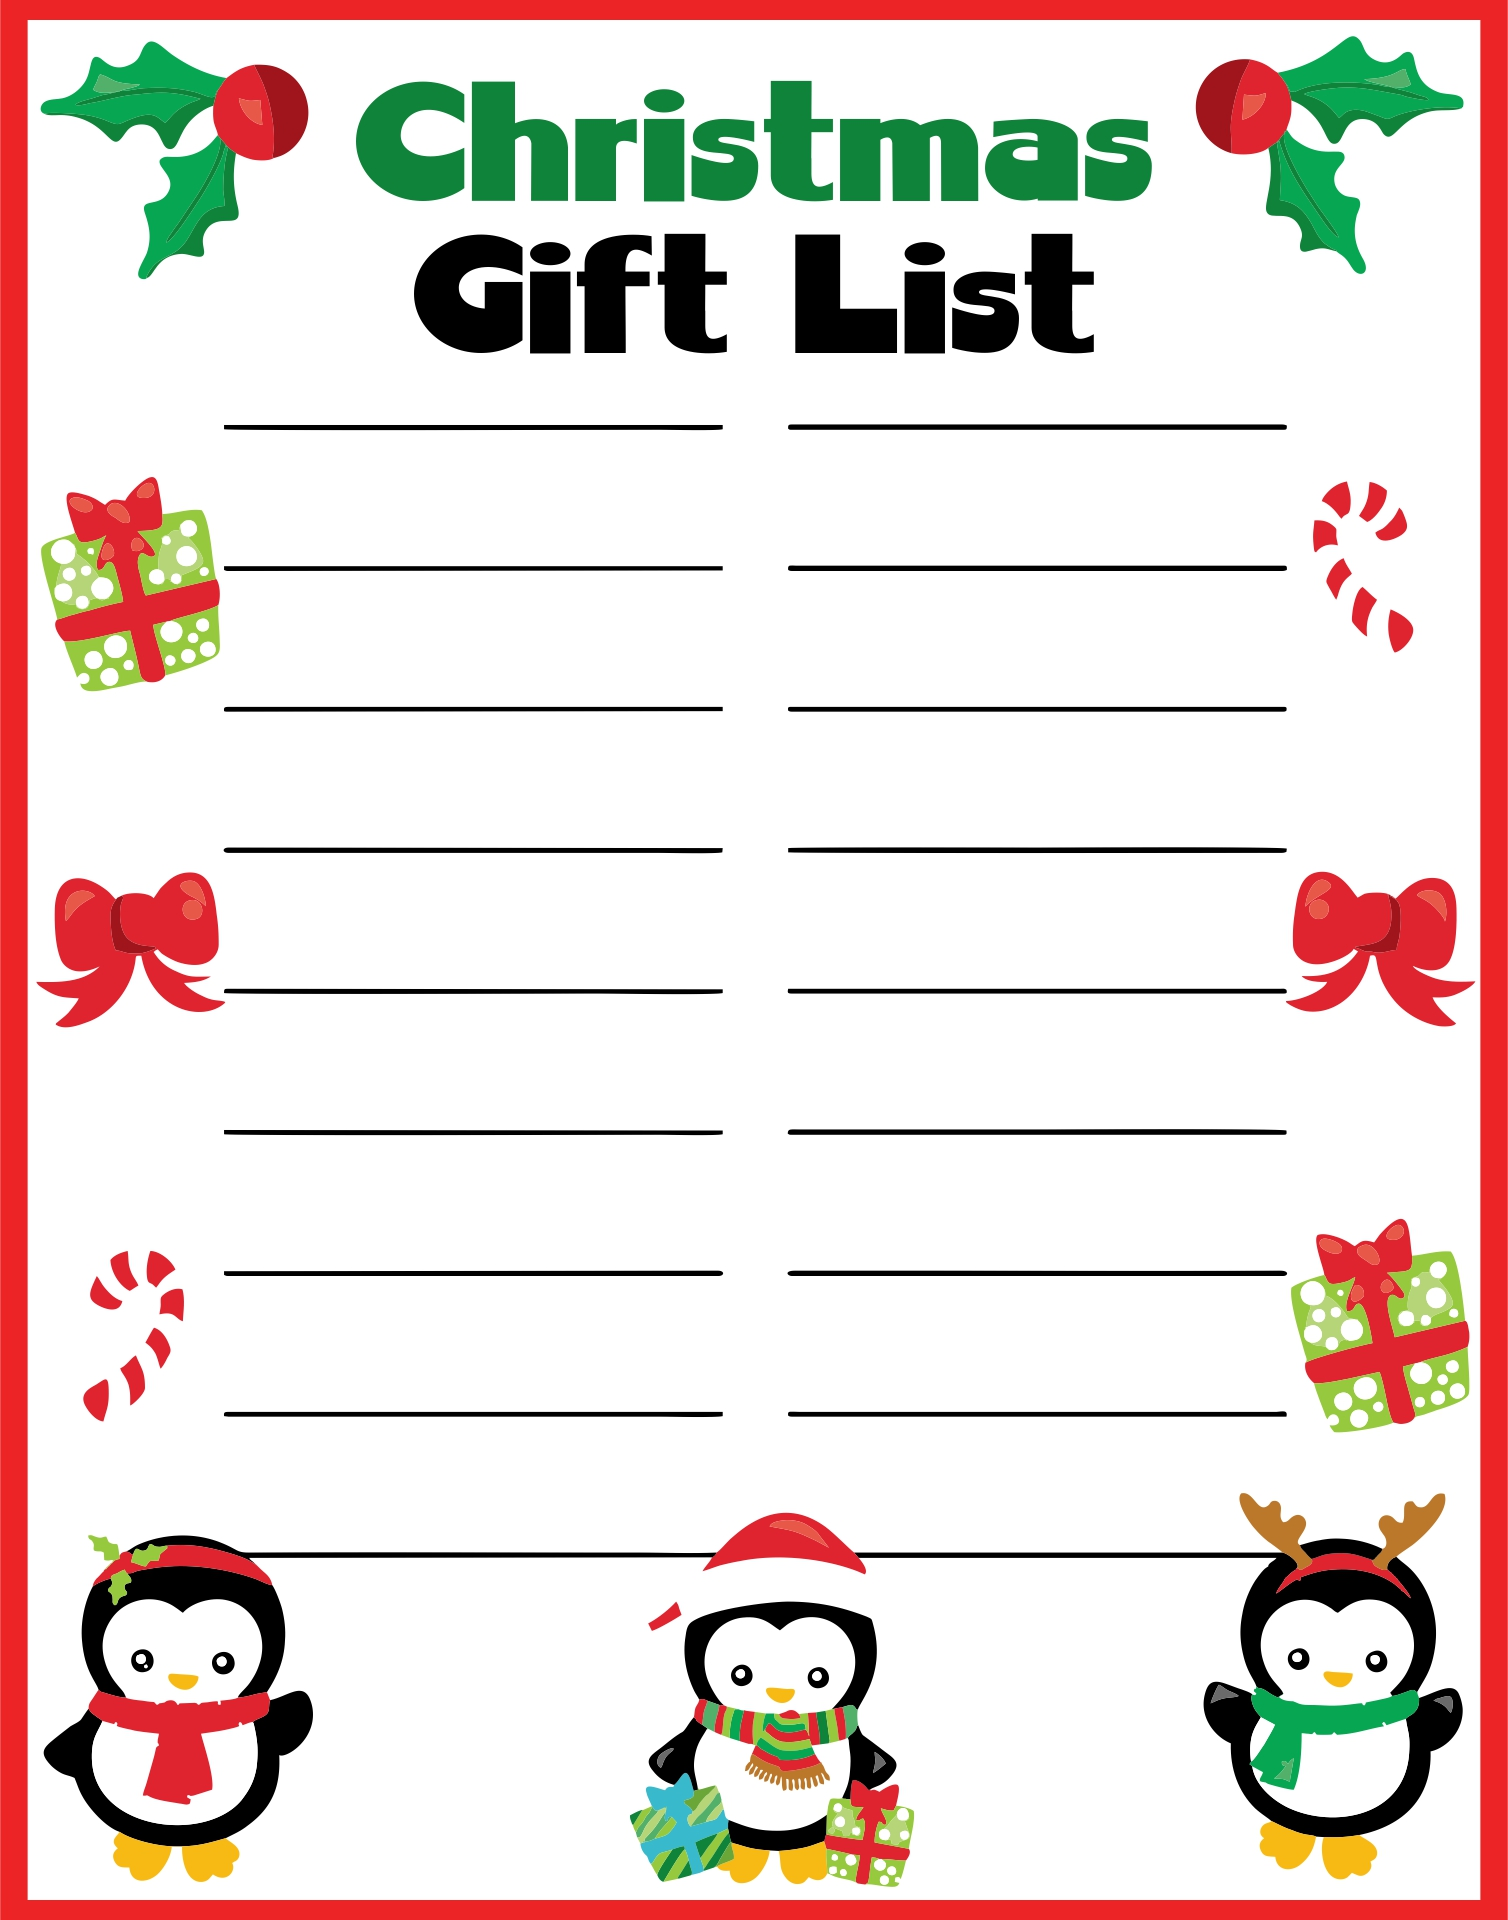 Printable Christmas Gift List Template